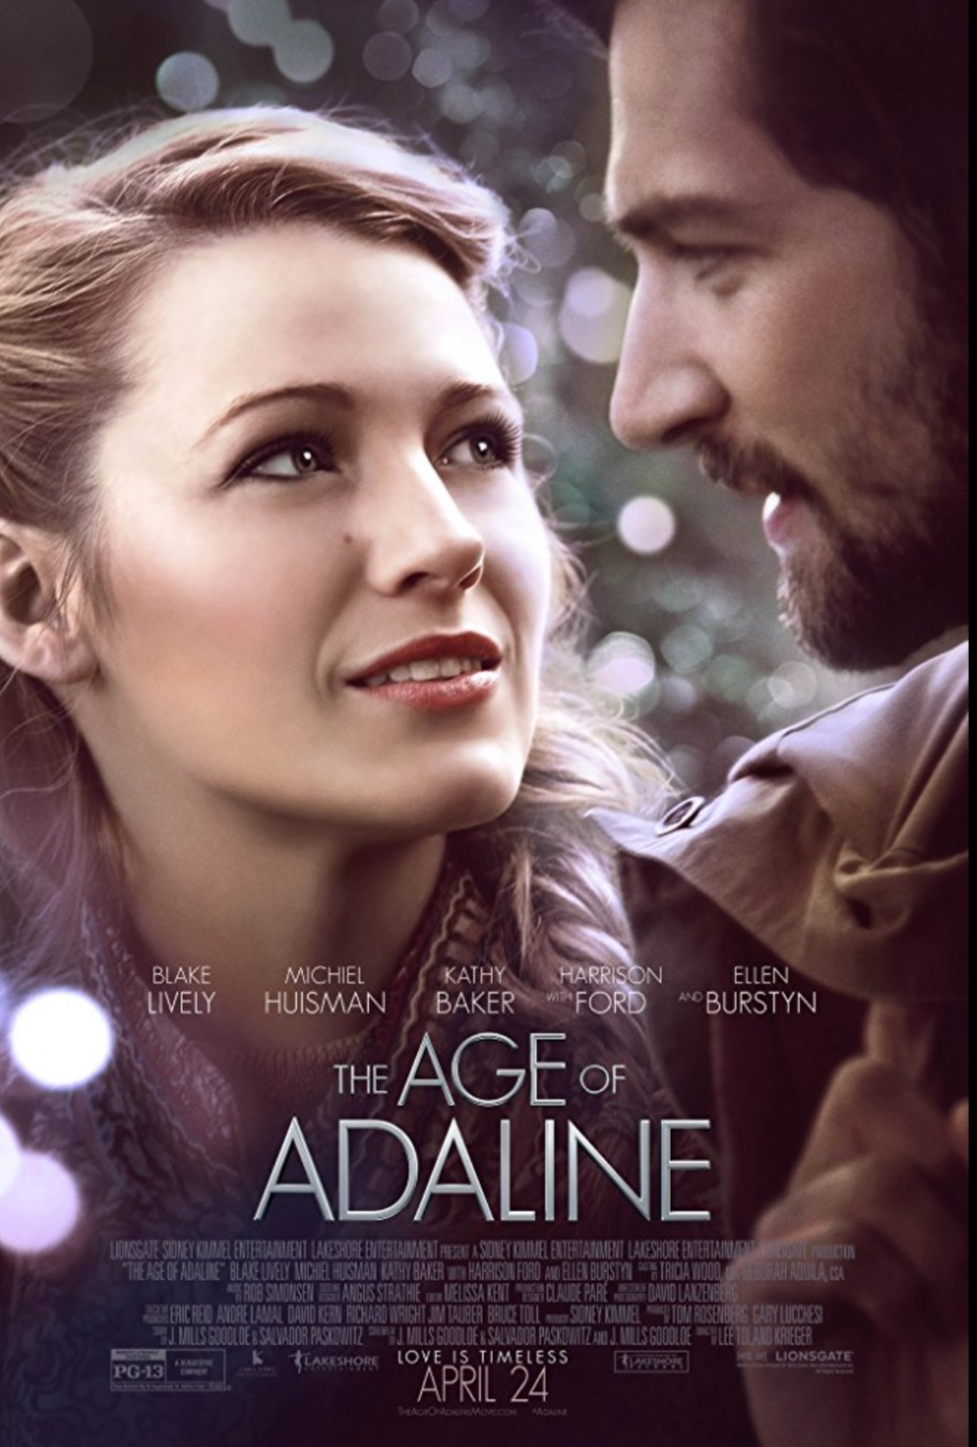 the age of adaline movie poster. top romance movies. best romance movies.